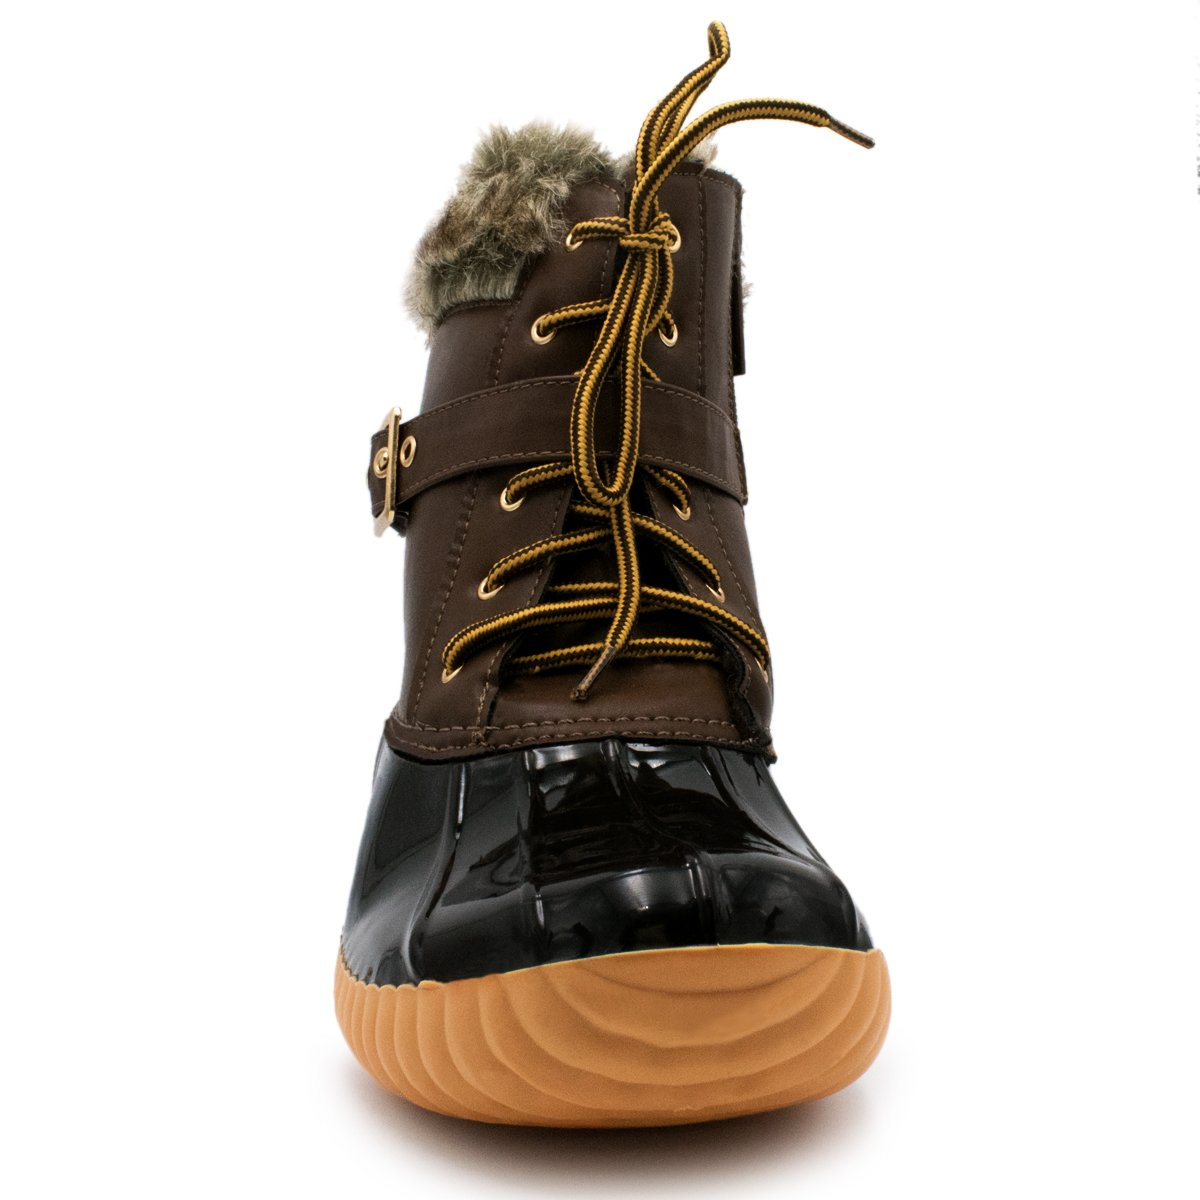 Nature Breeze Duck-01 Women's Chic Lace up Buckled Duck Waterproof Snow Boots B073T574Z5 7 B(M) US|Brown Pvc